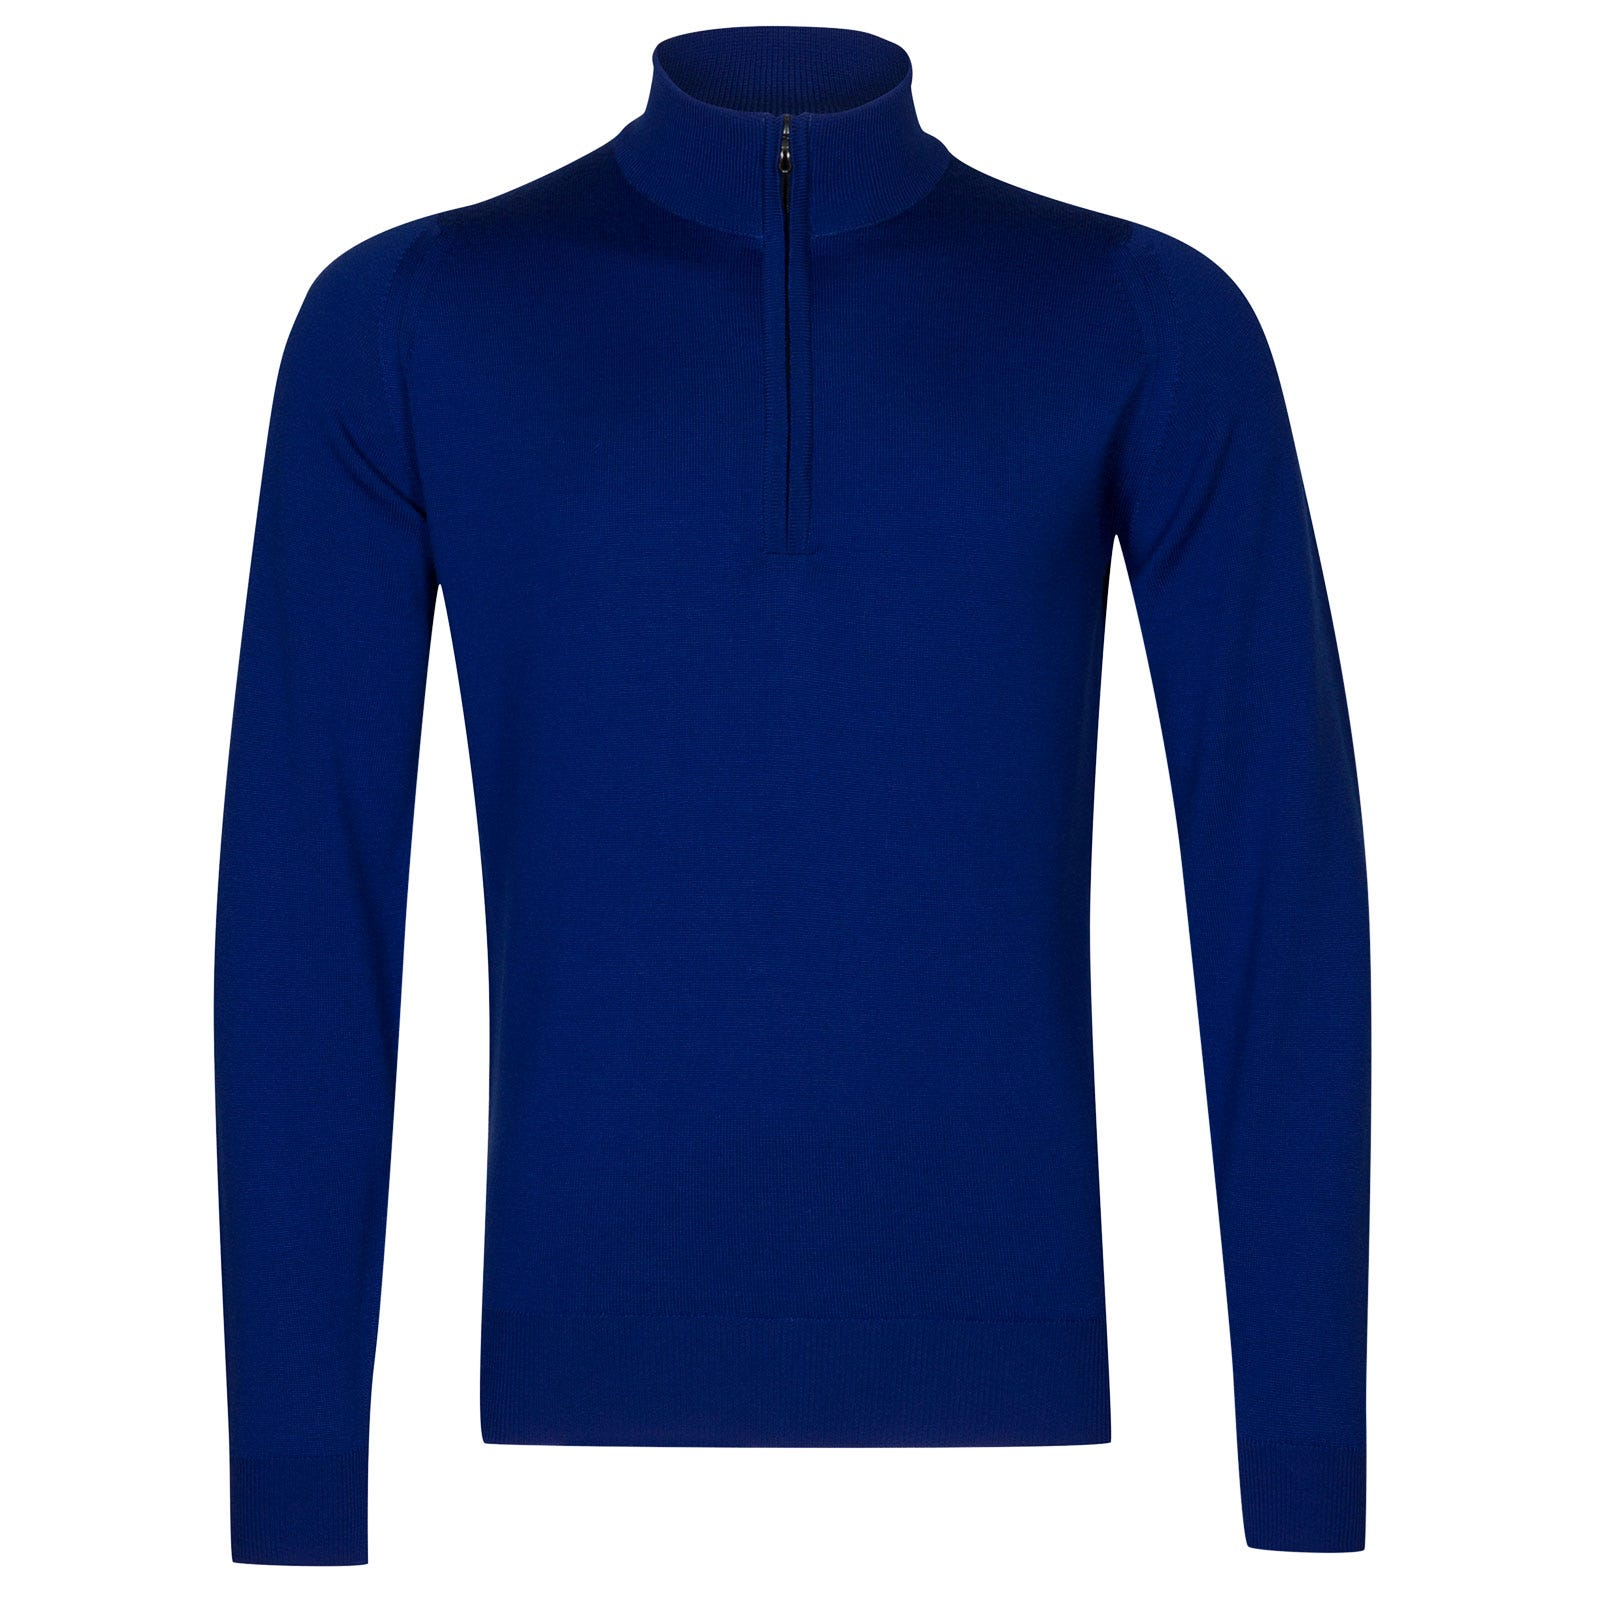 John Smedley tapton Merino Wool Pullover in Coniston Blue-XXL